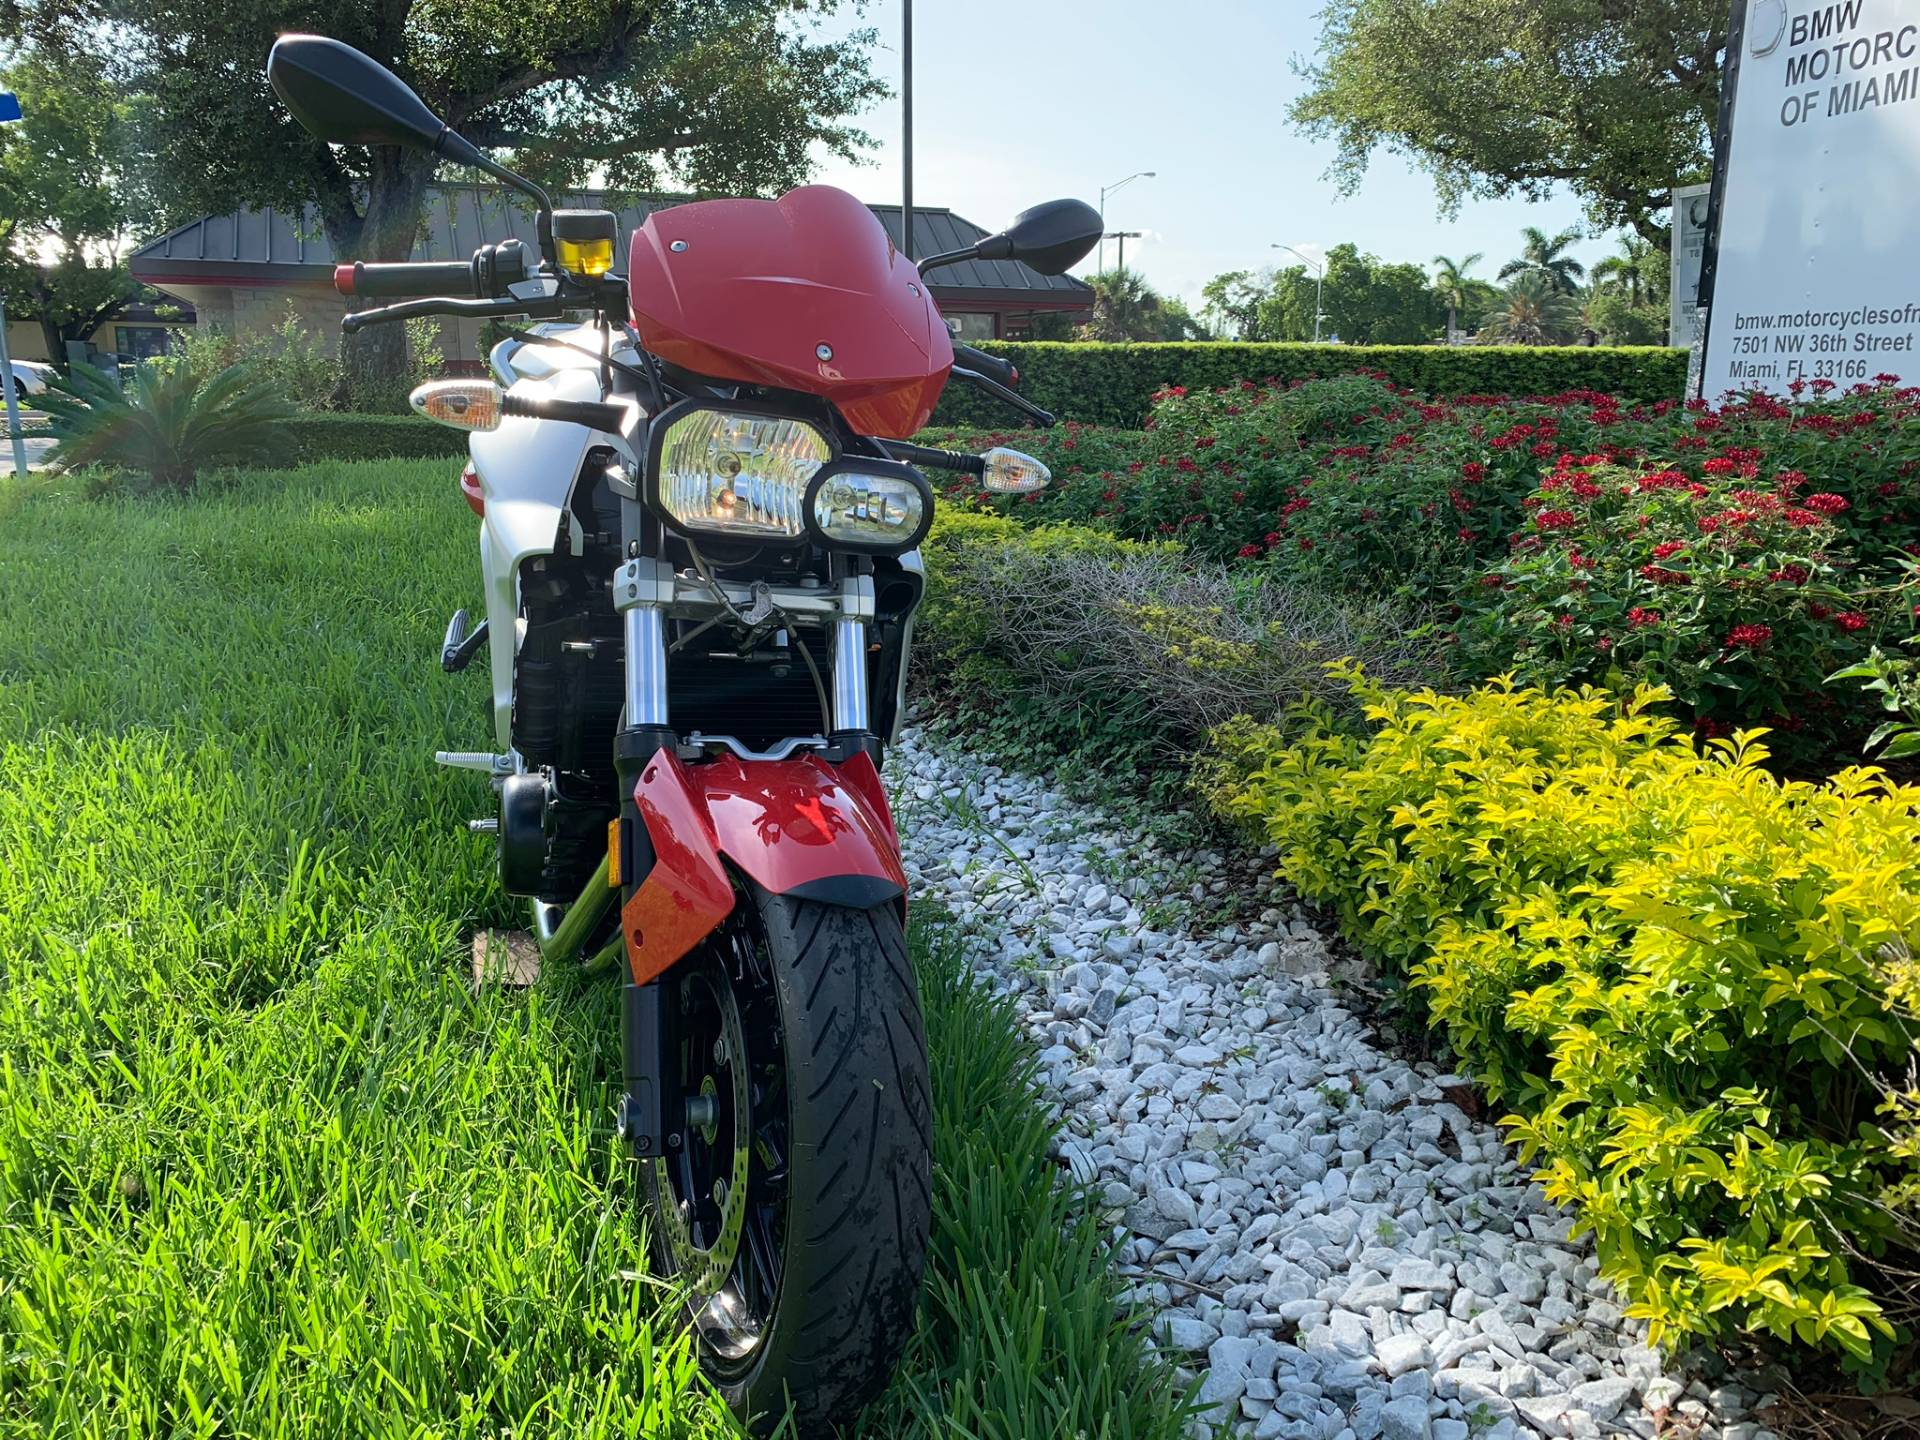 Used 2012 BMW F 800 R for sale, BMW F 800R for sale, BMW Motorcycle F800R, used BMW Roaster, Naked, 800, BMW. BMW Motorcycles of Miami, Motorcycles of Miami, Motorcycles Miami, New Motorcycles, Used Motorcycles, pre-owned. #BMWMotorcyclesOfMiami #MotorcyclesOfMiami. - Photo 30